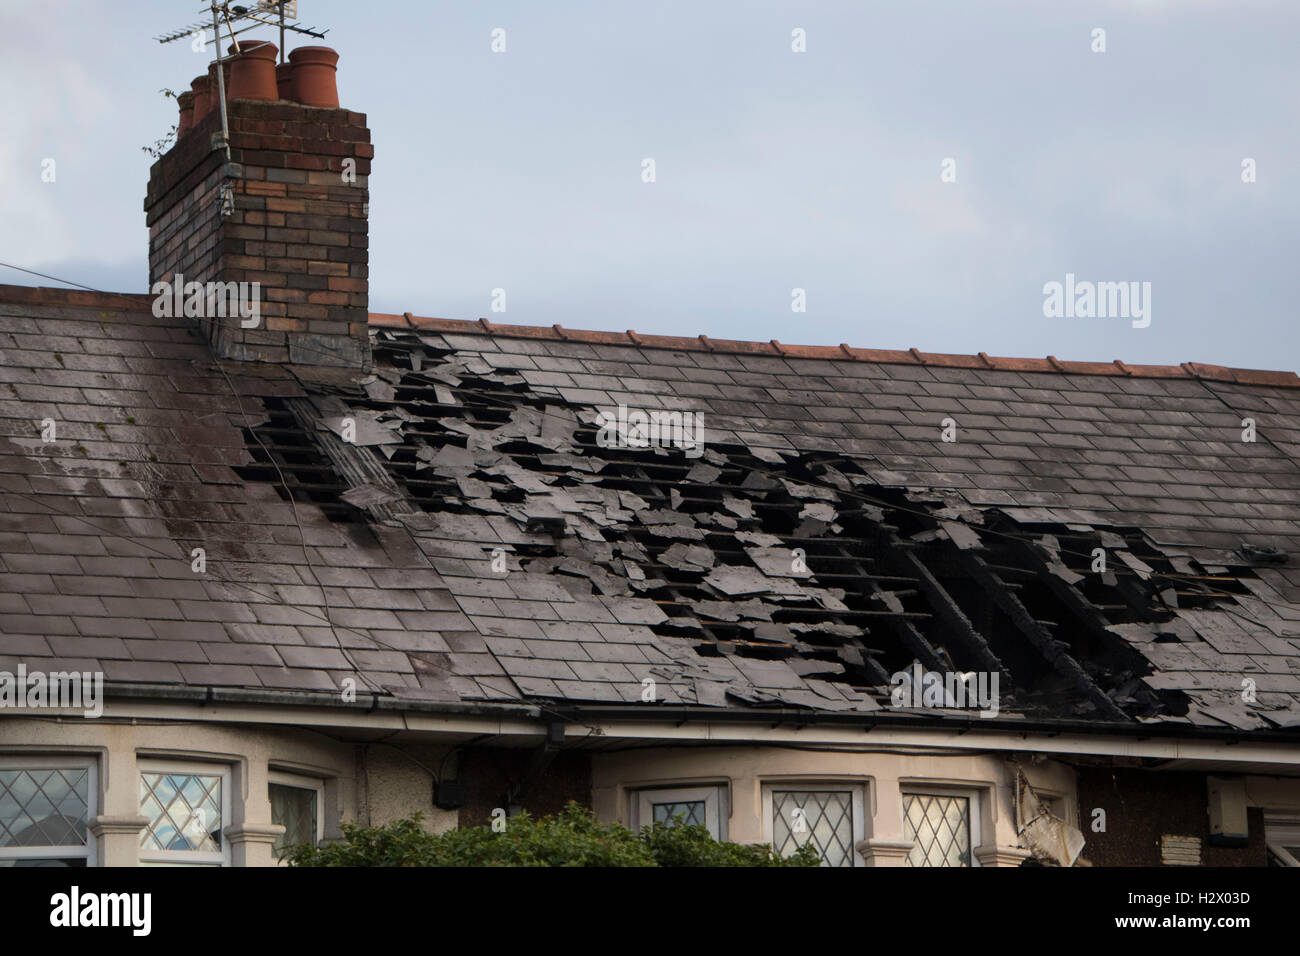 Fire damage to a residential home property house in Cardiff, Wales. - Stock Image